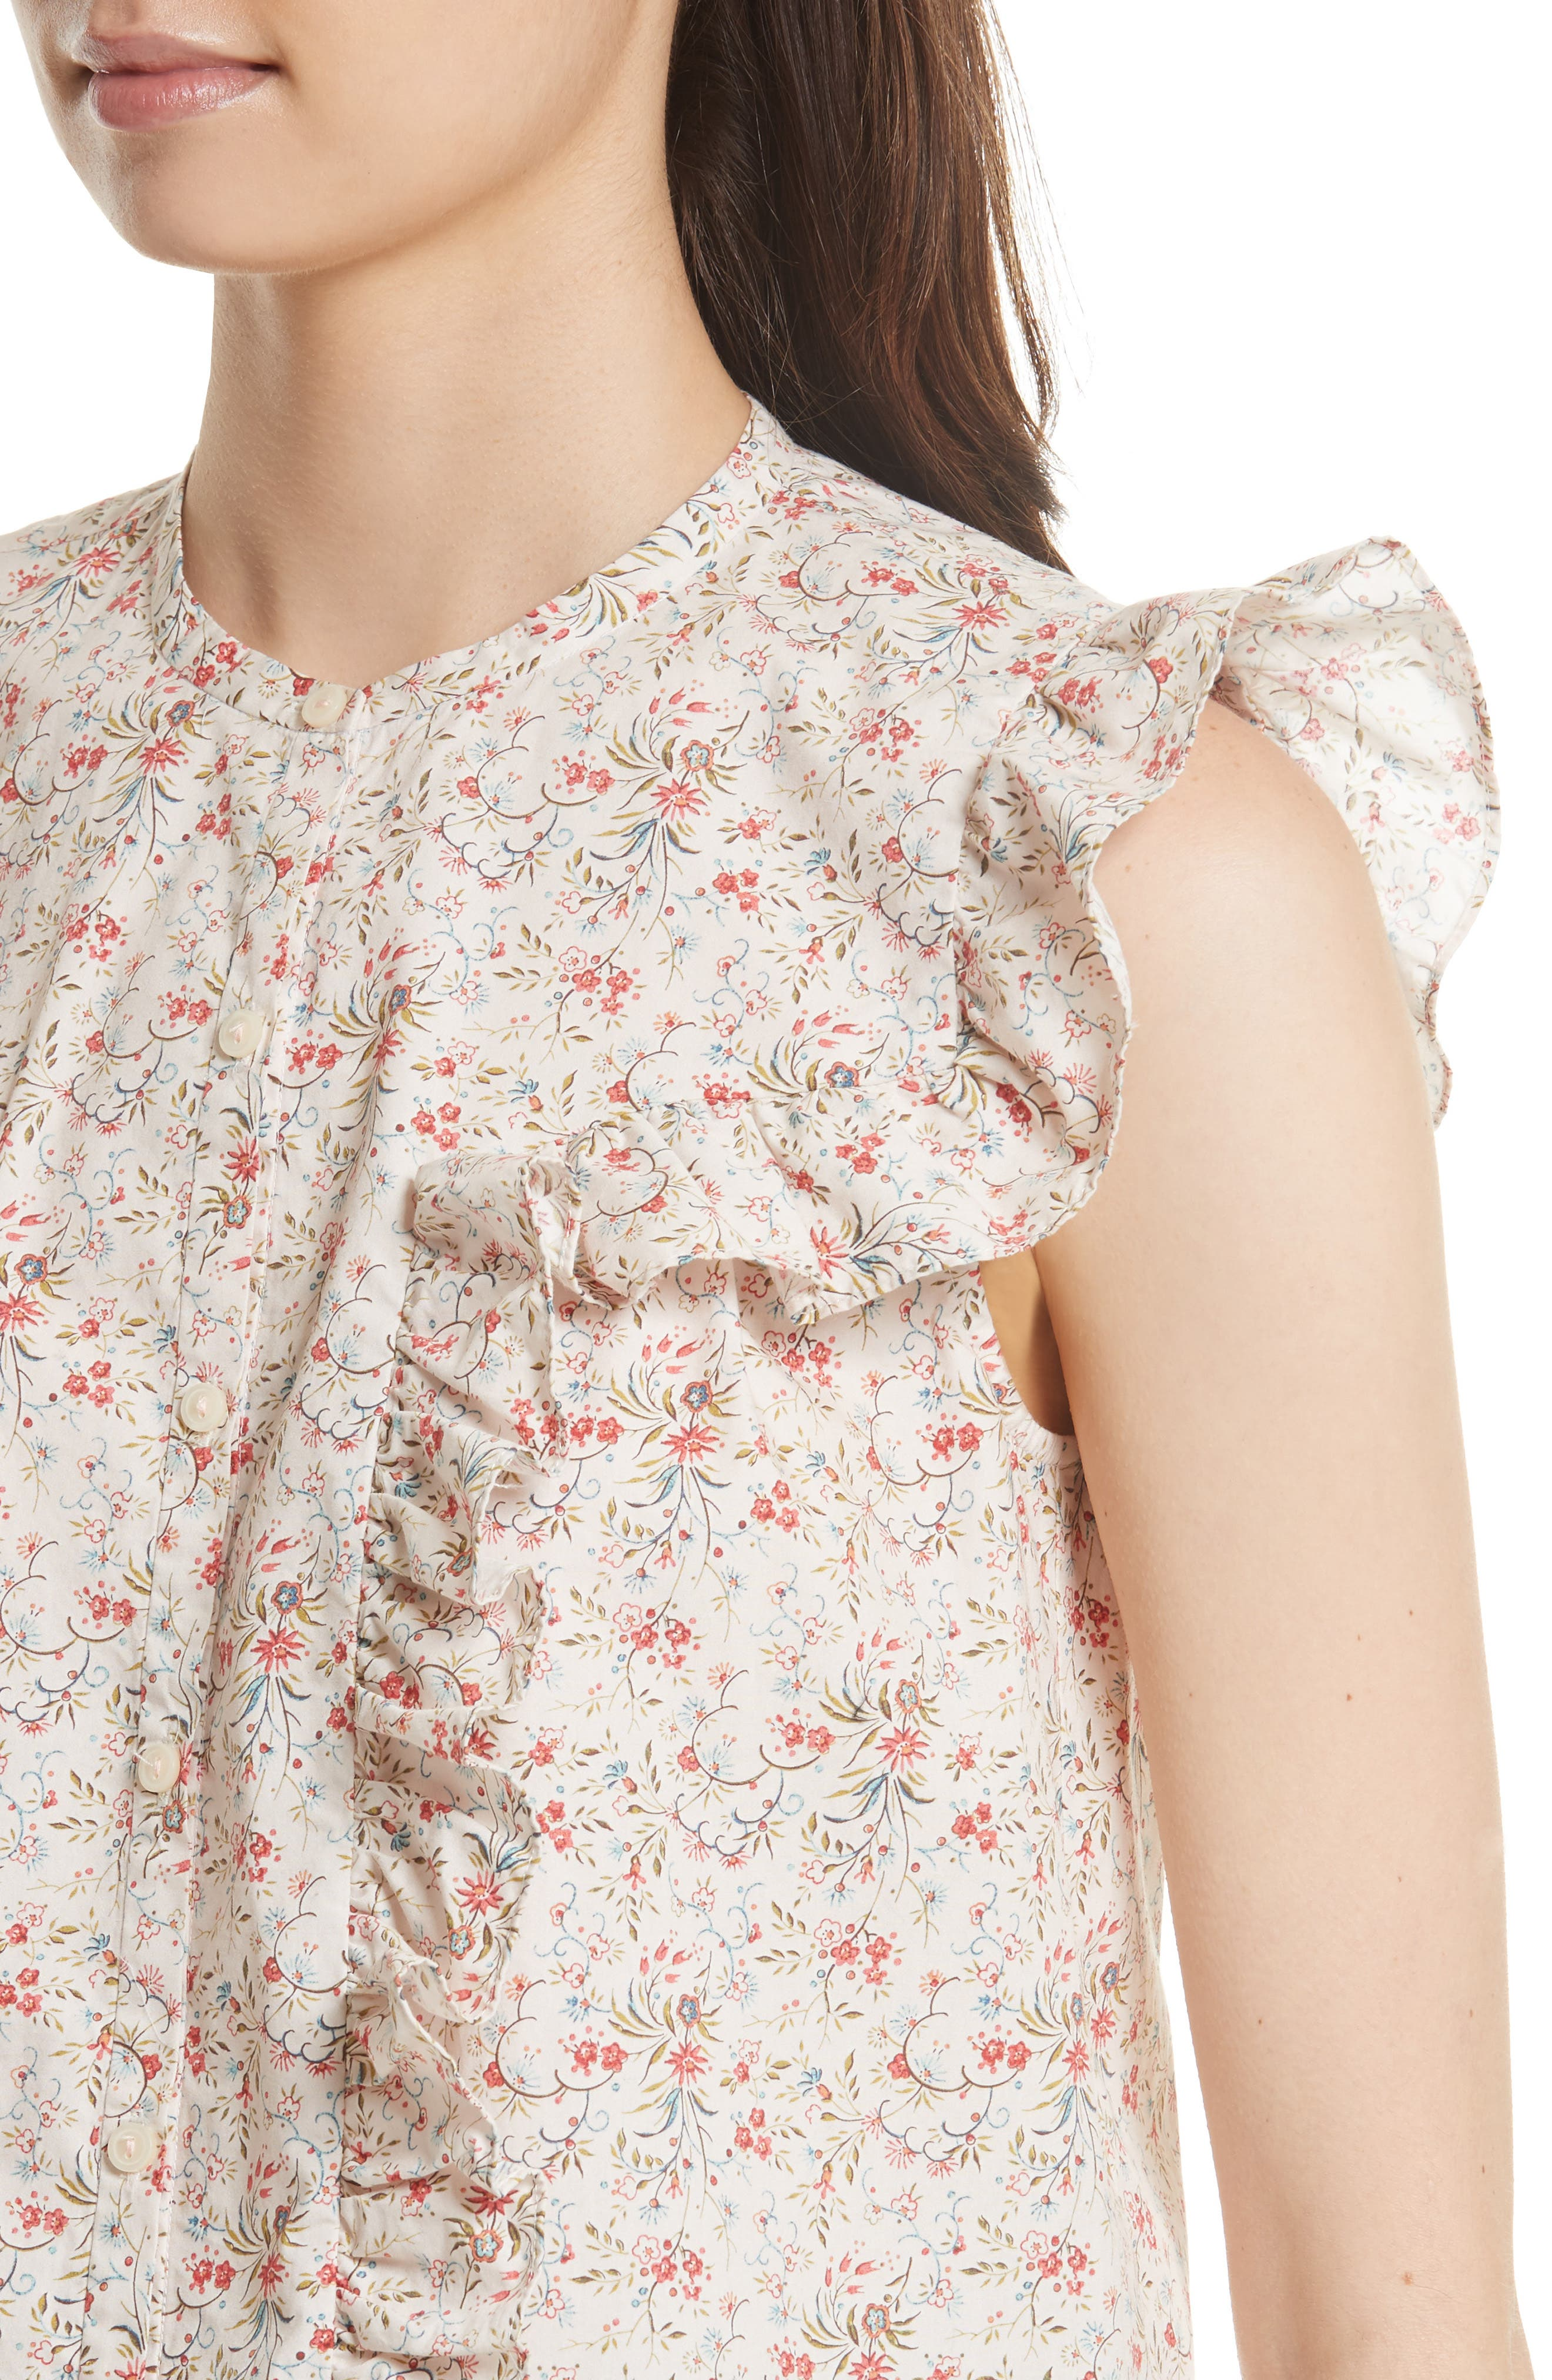 Brittany Sleeveless Floral Blouse,                             Alternate thumbnail 4, color,                             902